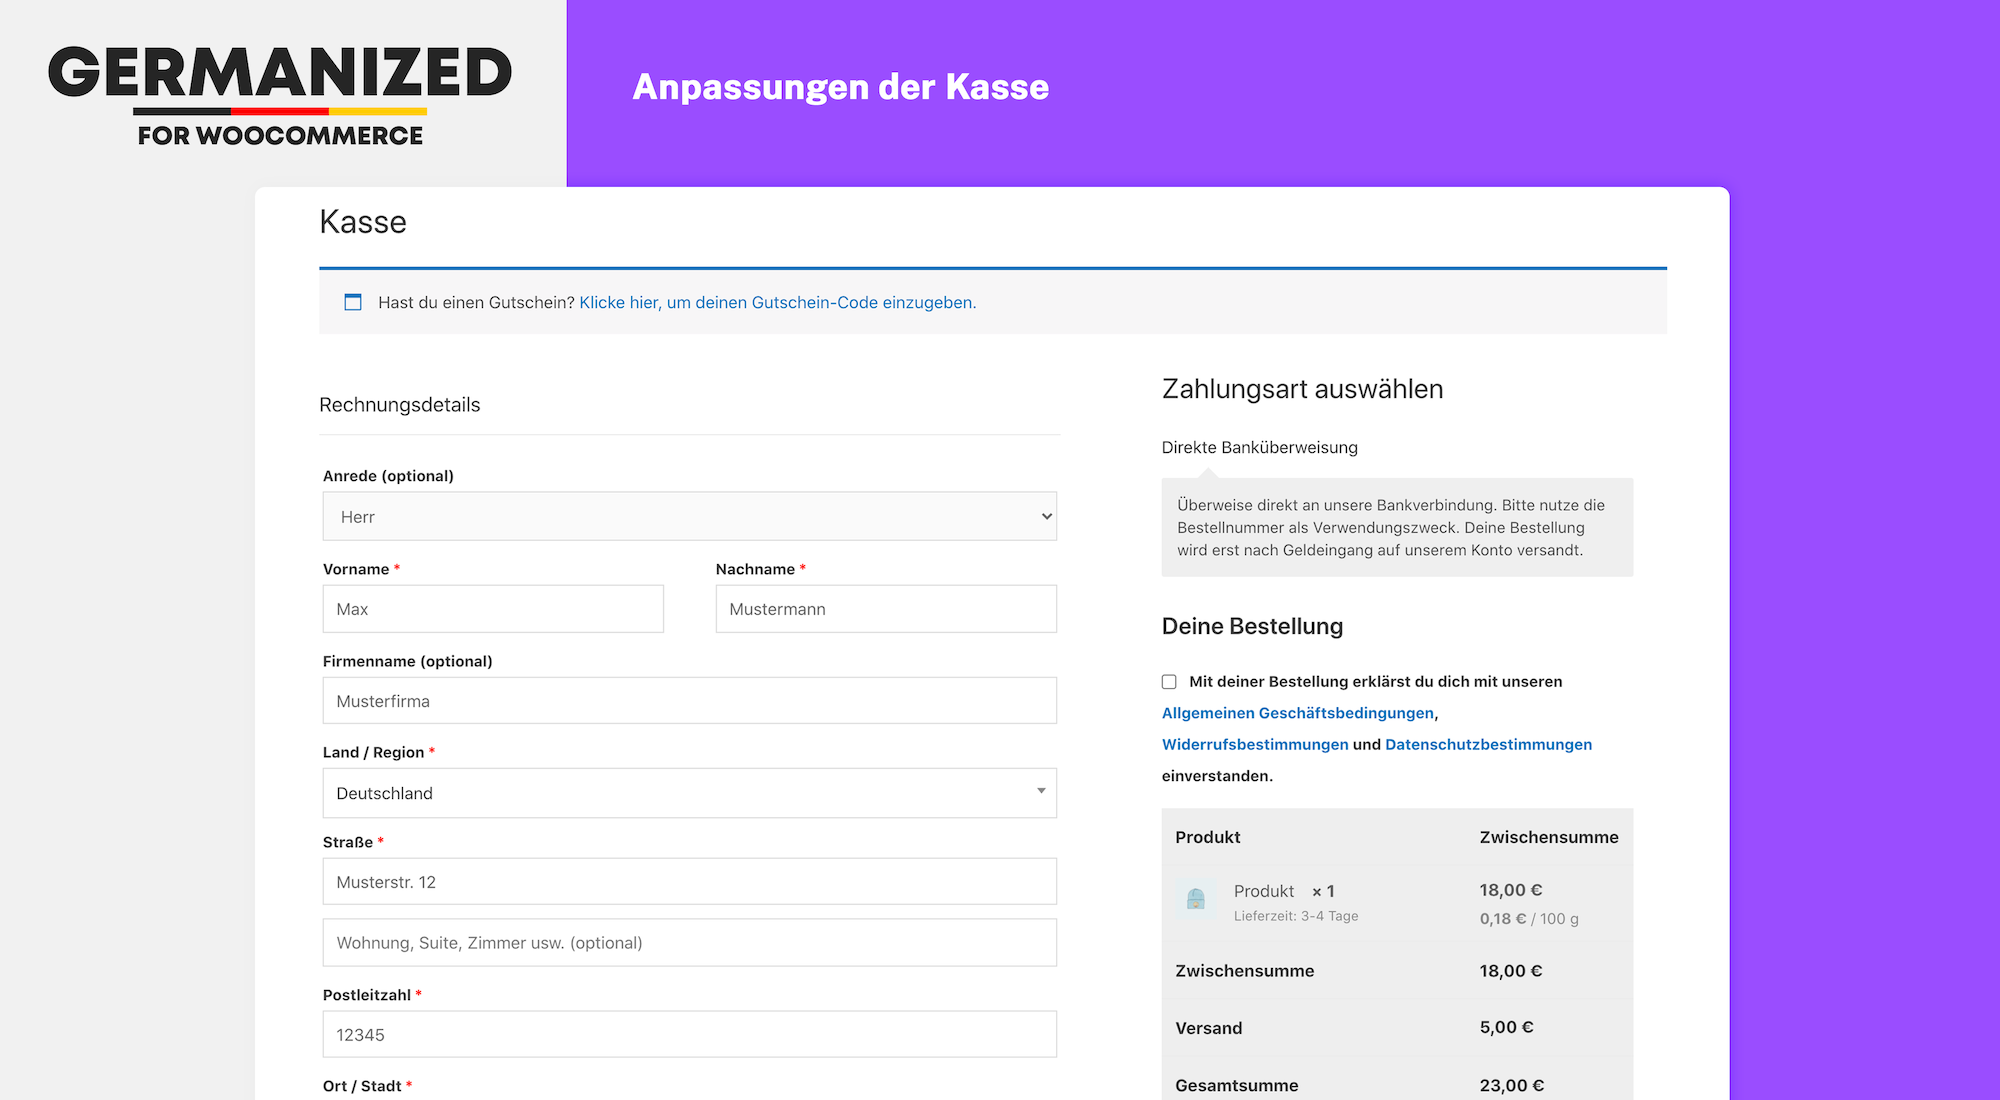 woocommerce-germanized screenshot 1